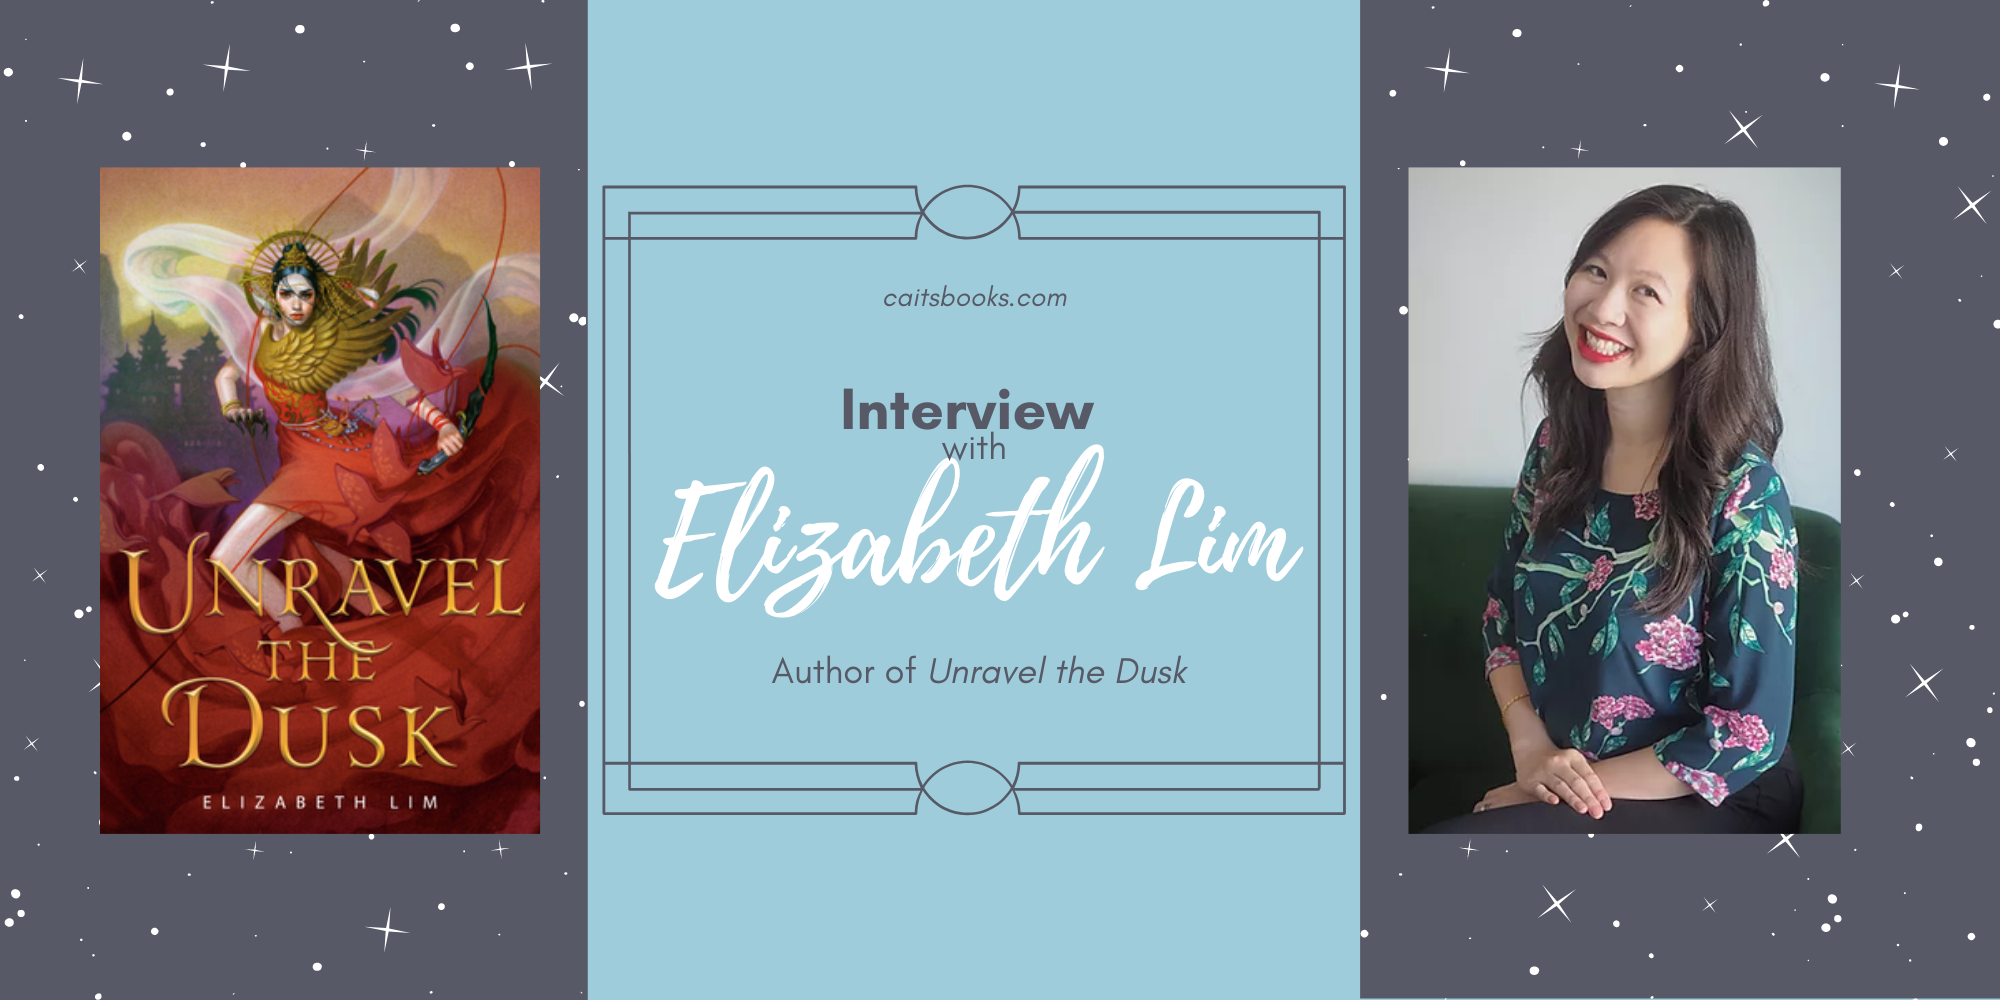 Elizabeth Lim Unravel the Dusk Interview